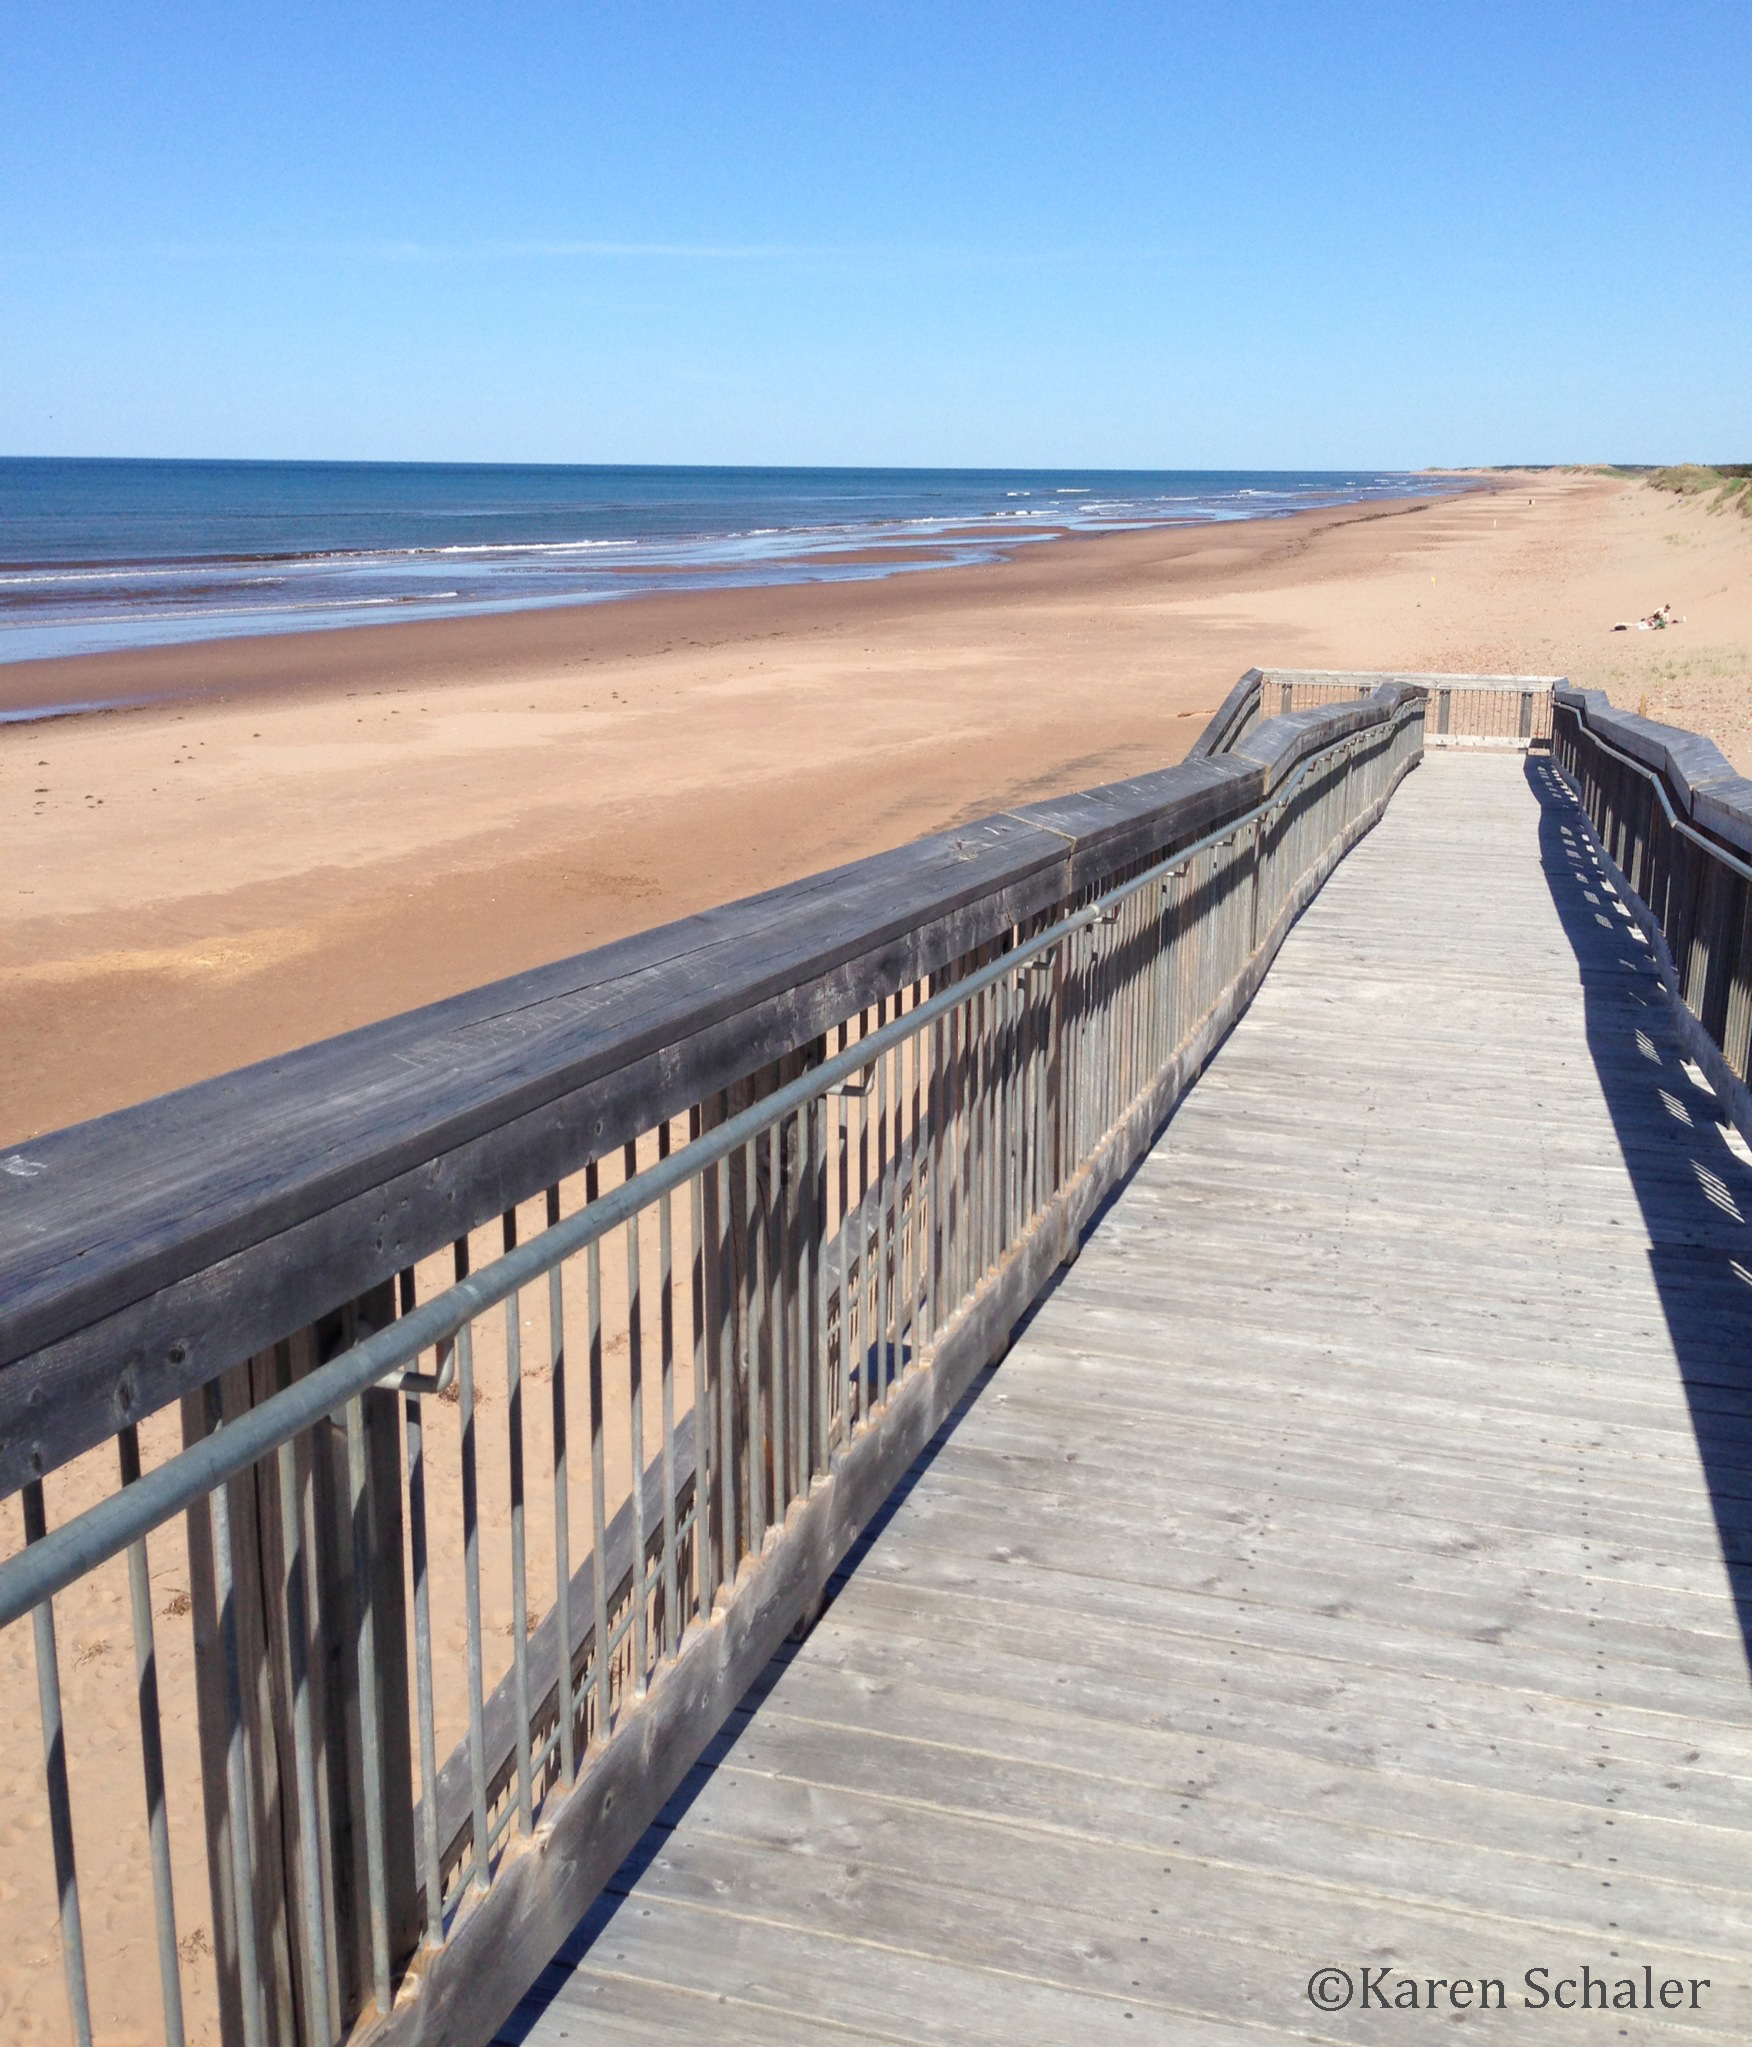 Beach House Inn Pei: Authentic Experiences On Prince Edward Island